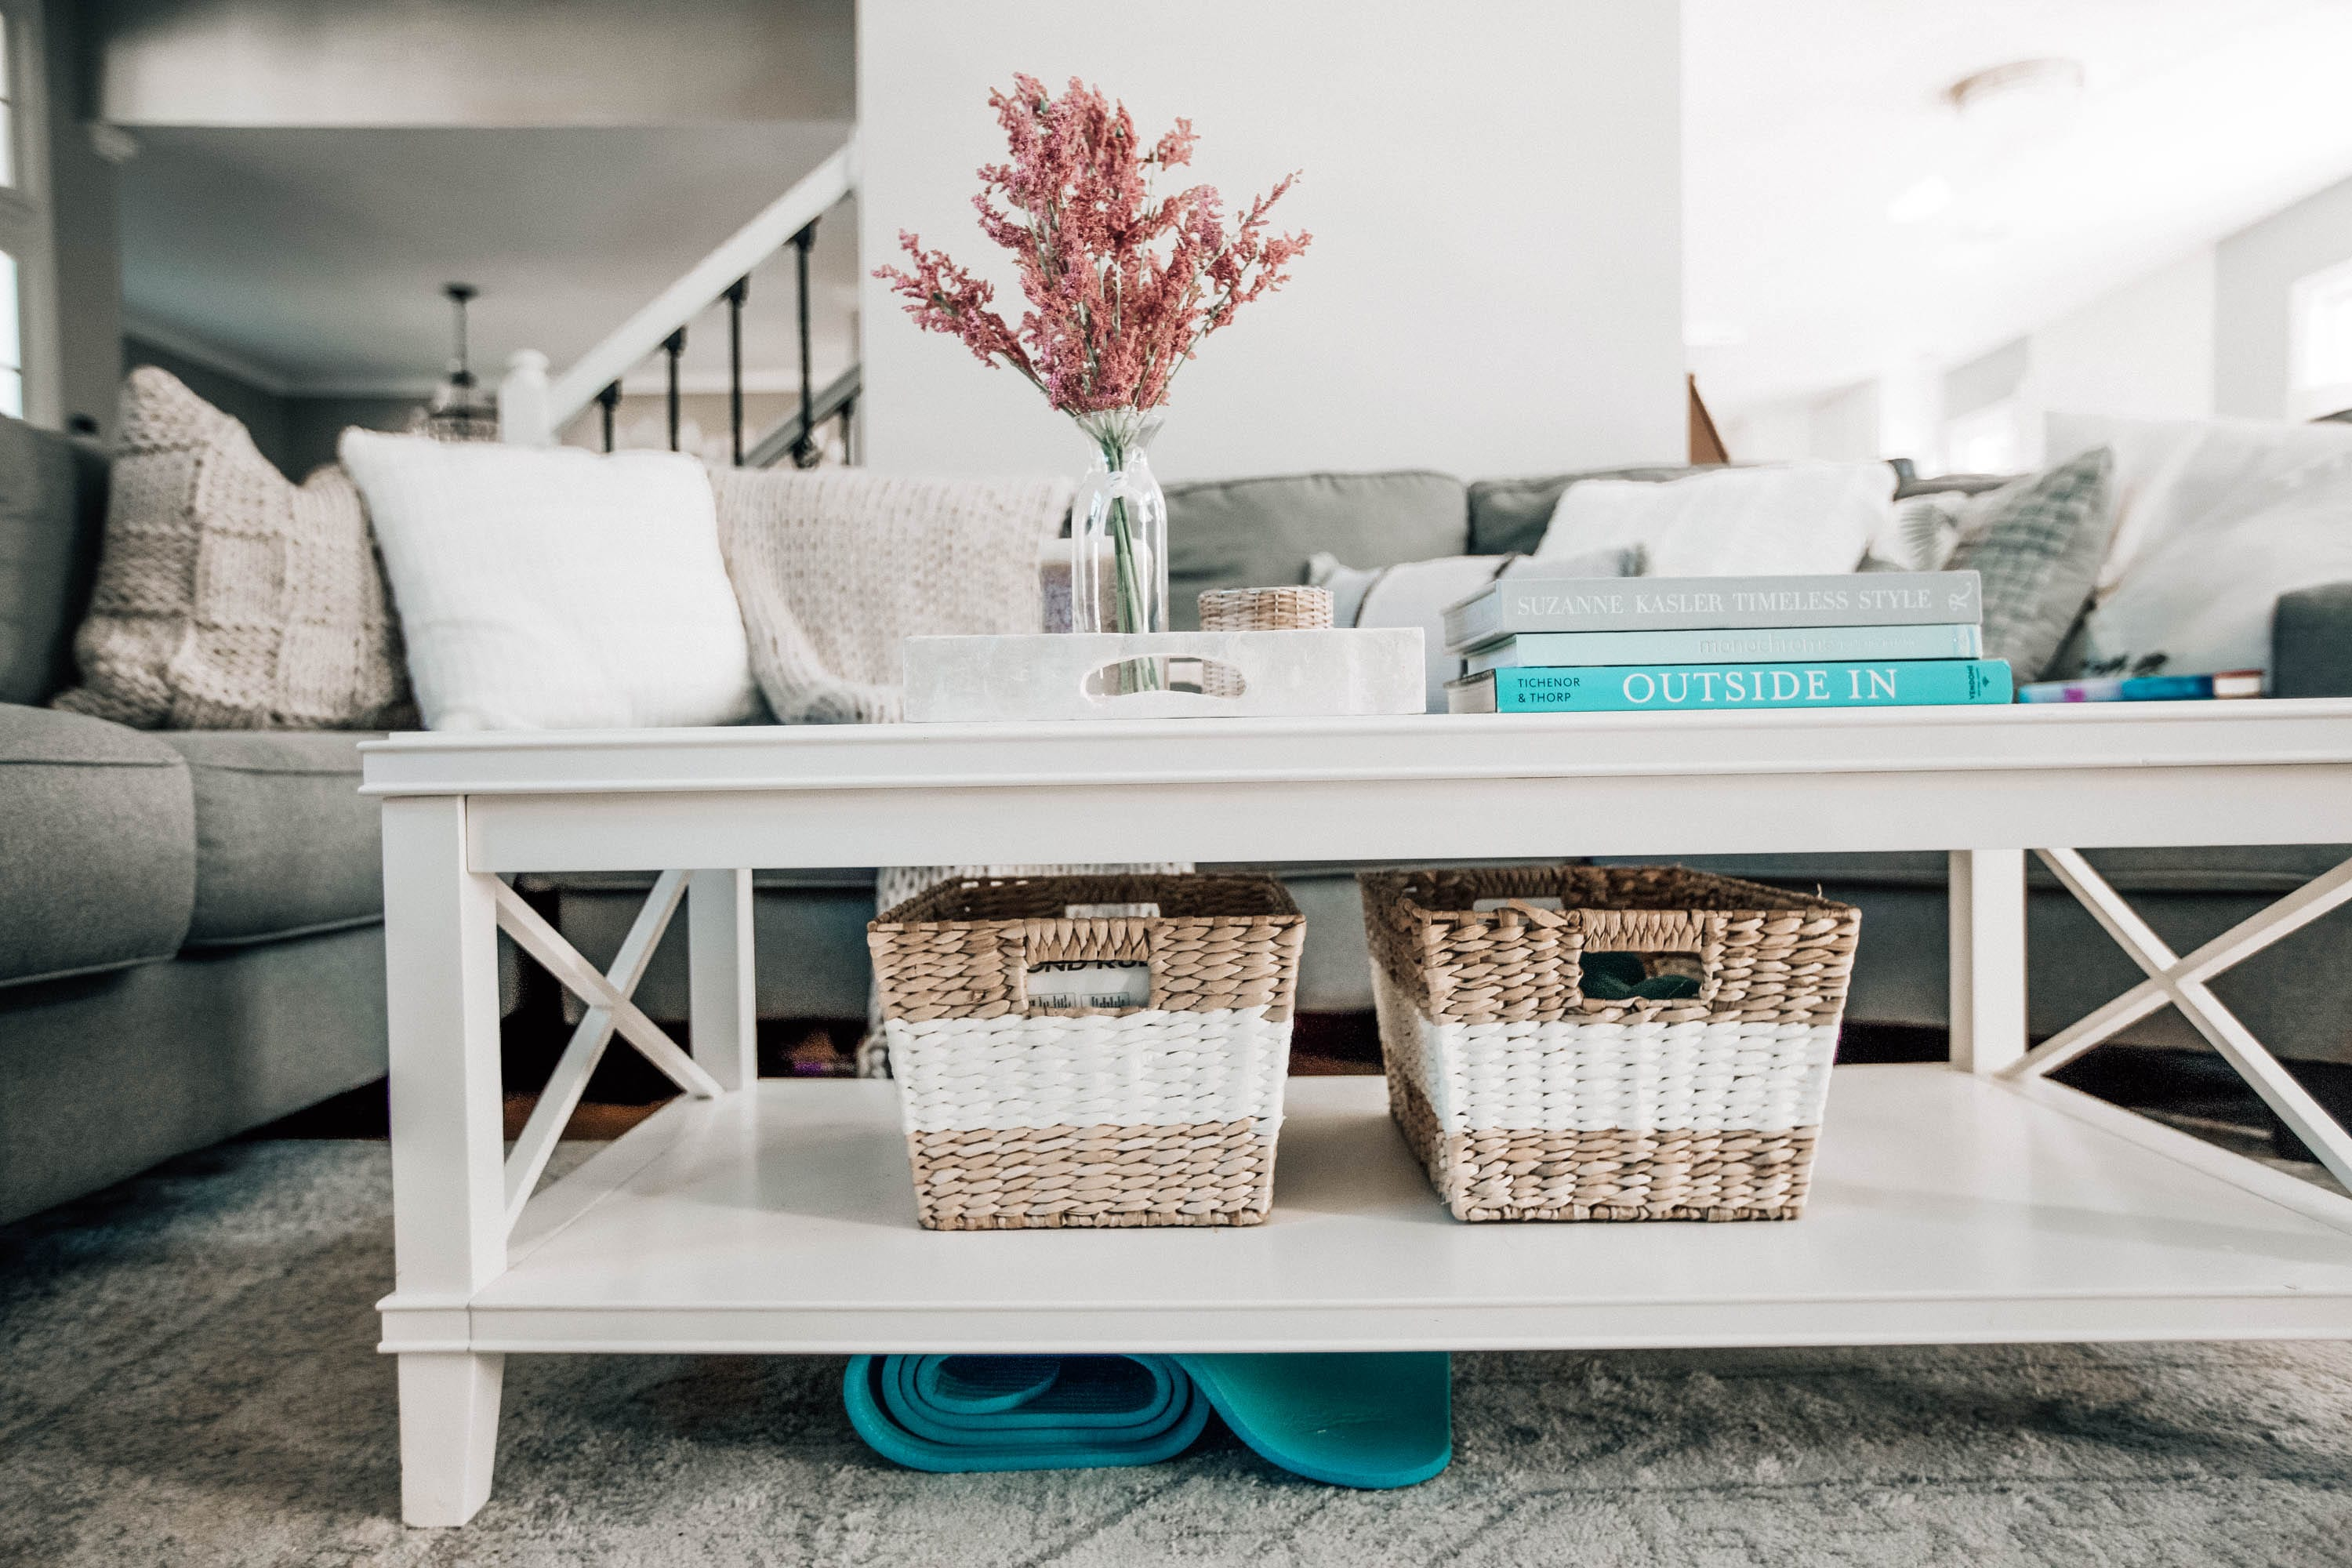 Ways to Organize Your Home with Baskets